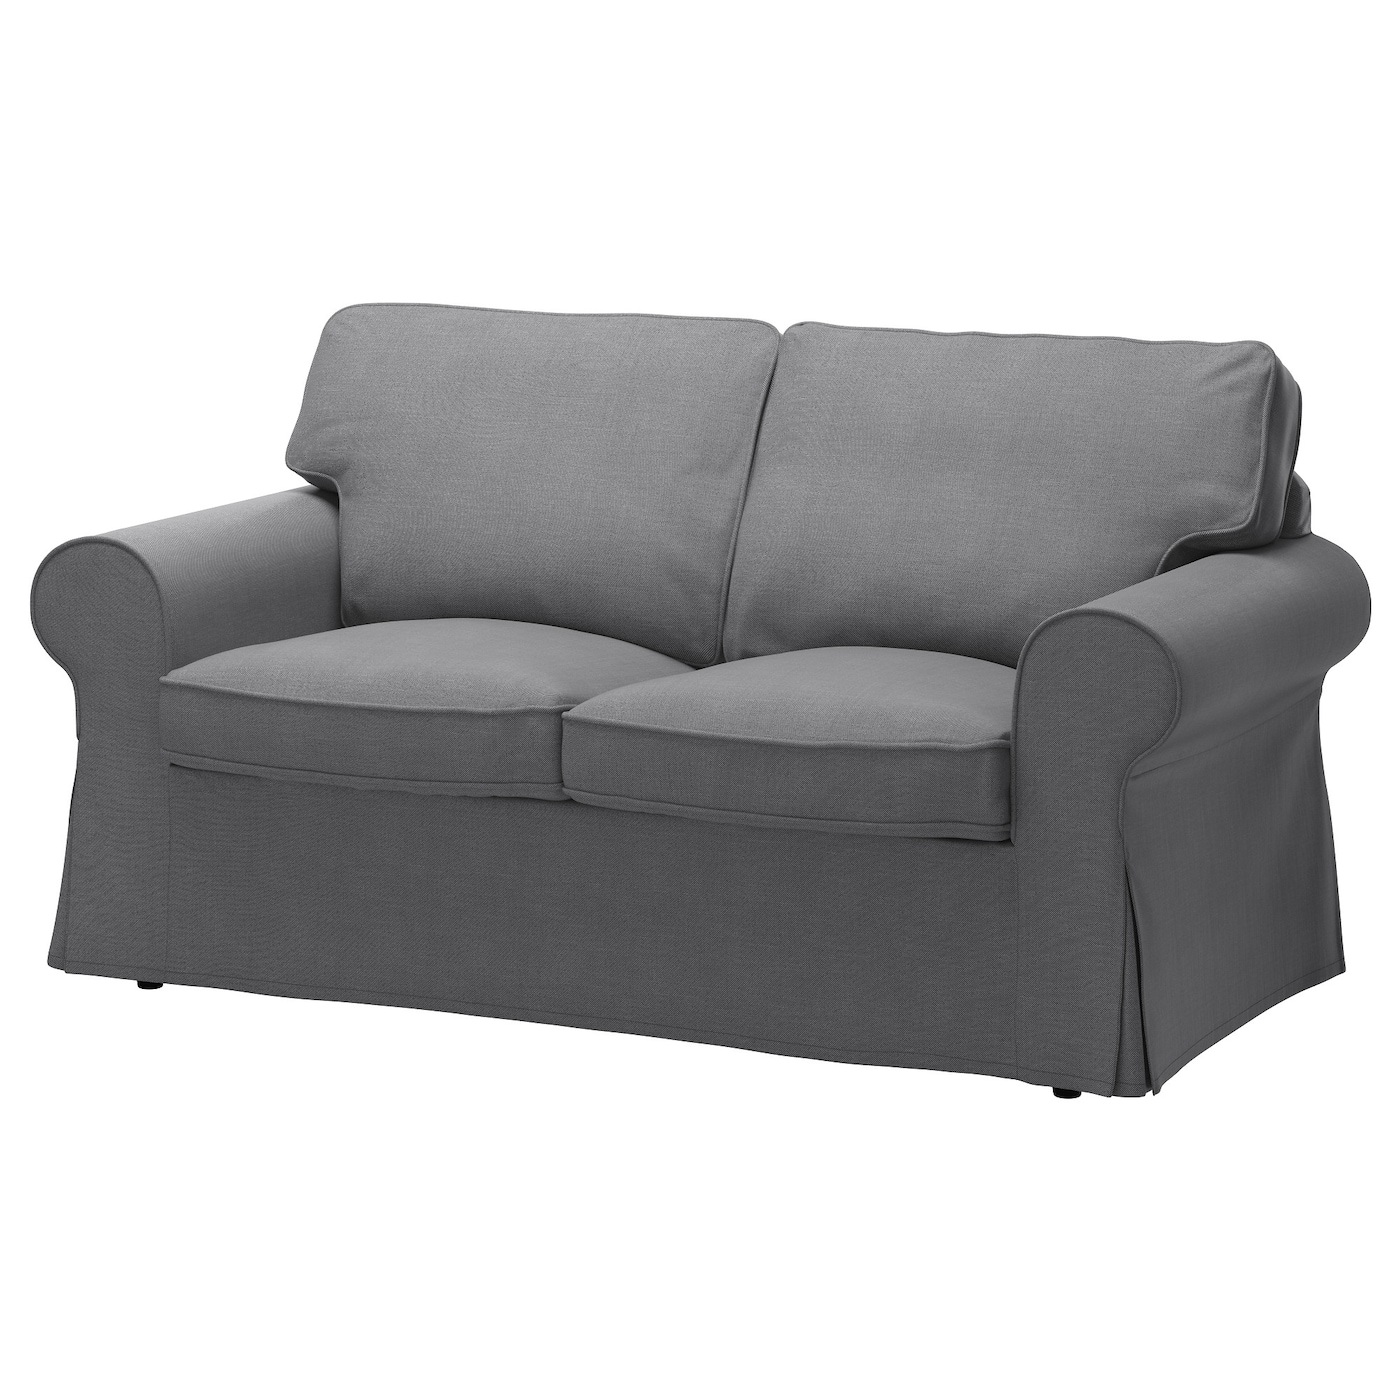 Charming IKEA EKTORP Two Seat Sofa 10 Year Guarantee. Read About The Terms In The